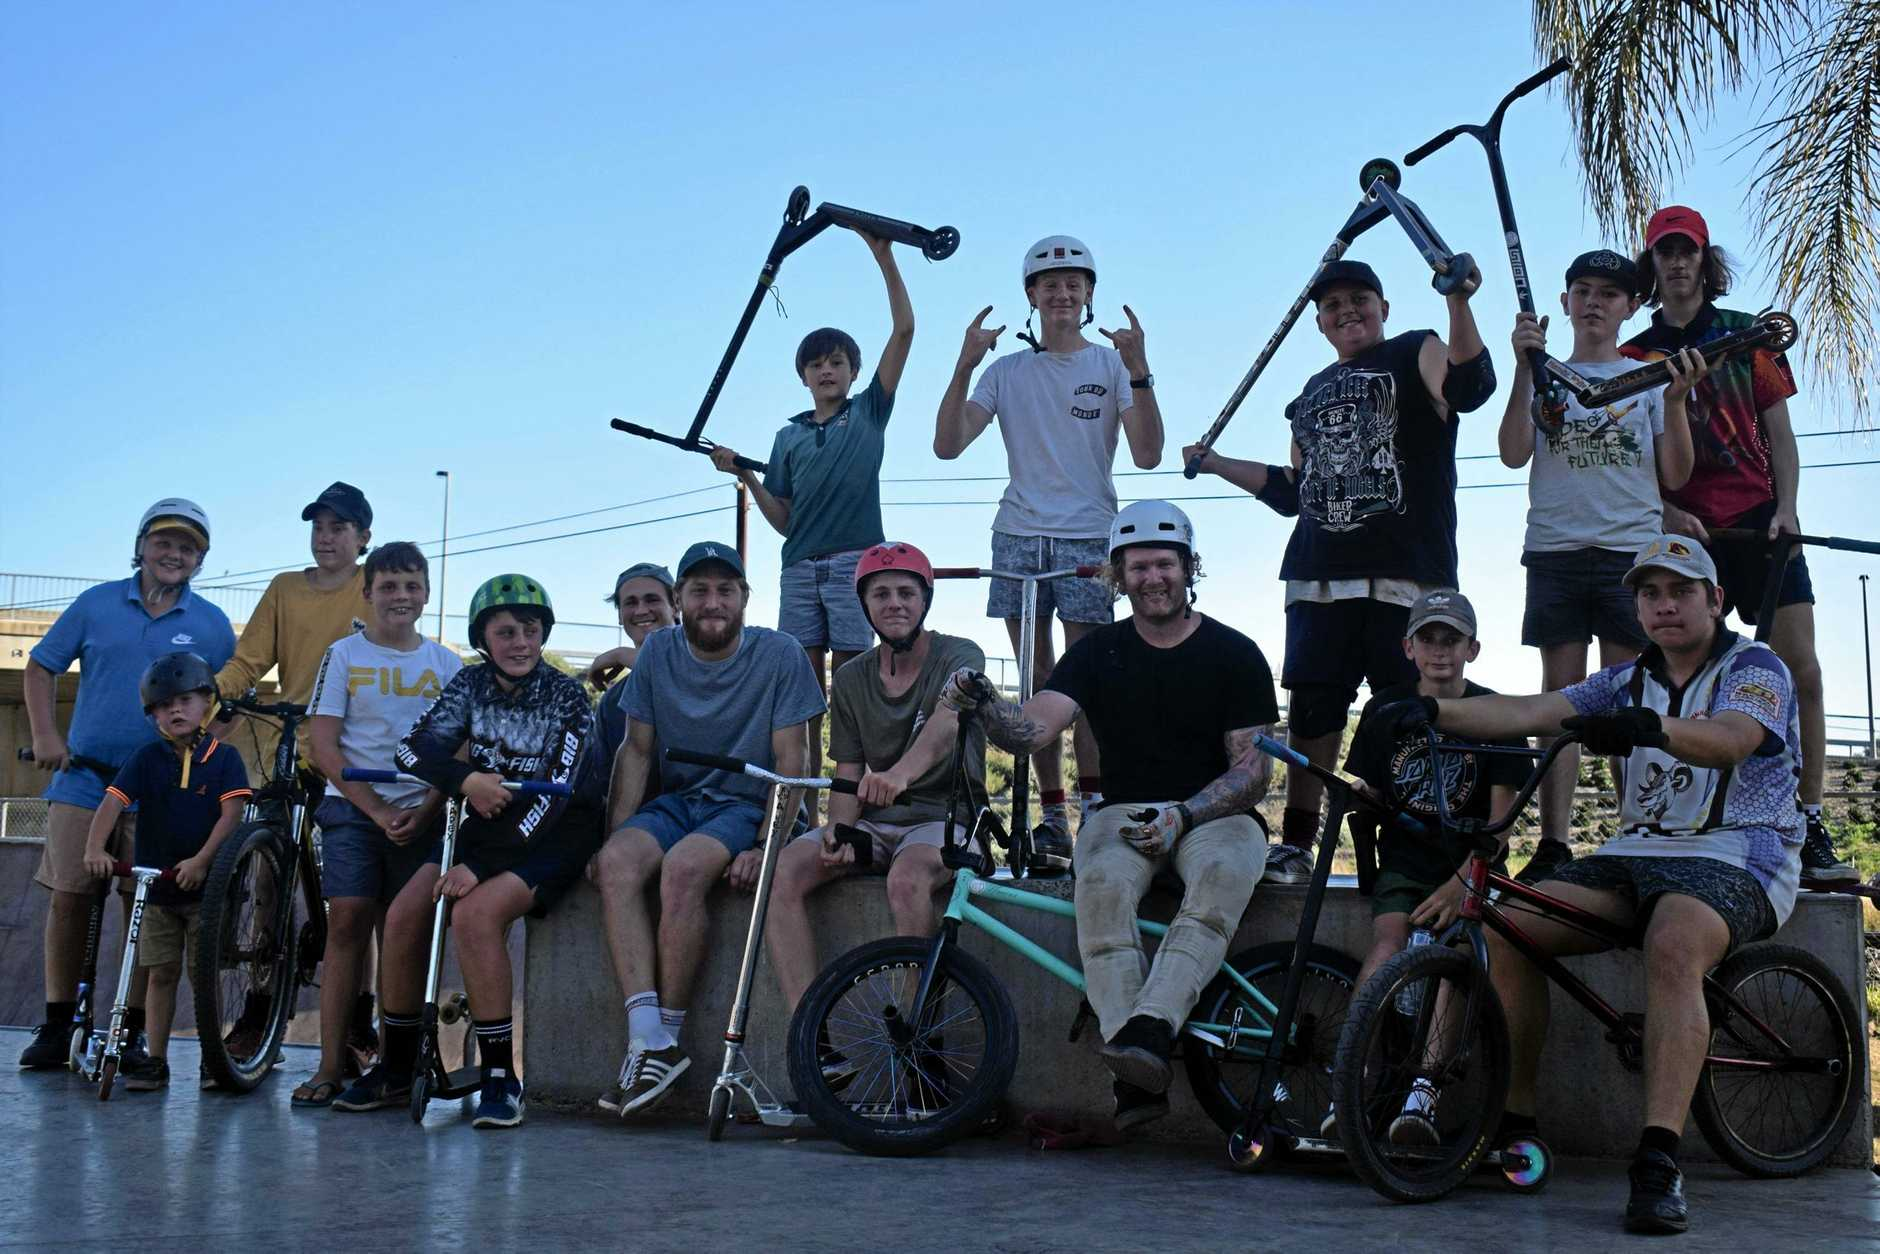 TIPS AND TRICKS: Chinchilla youth spent the afternoon with former professional BMX rider Josh Fountain, enjoying an afternoon of tricks and talks.